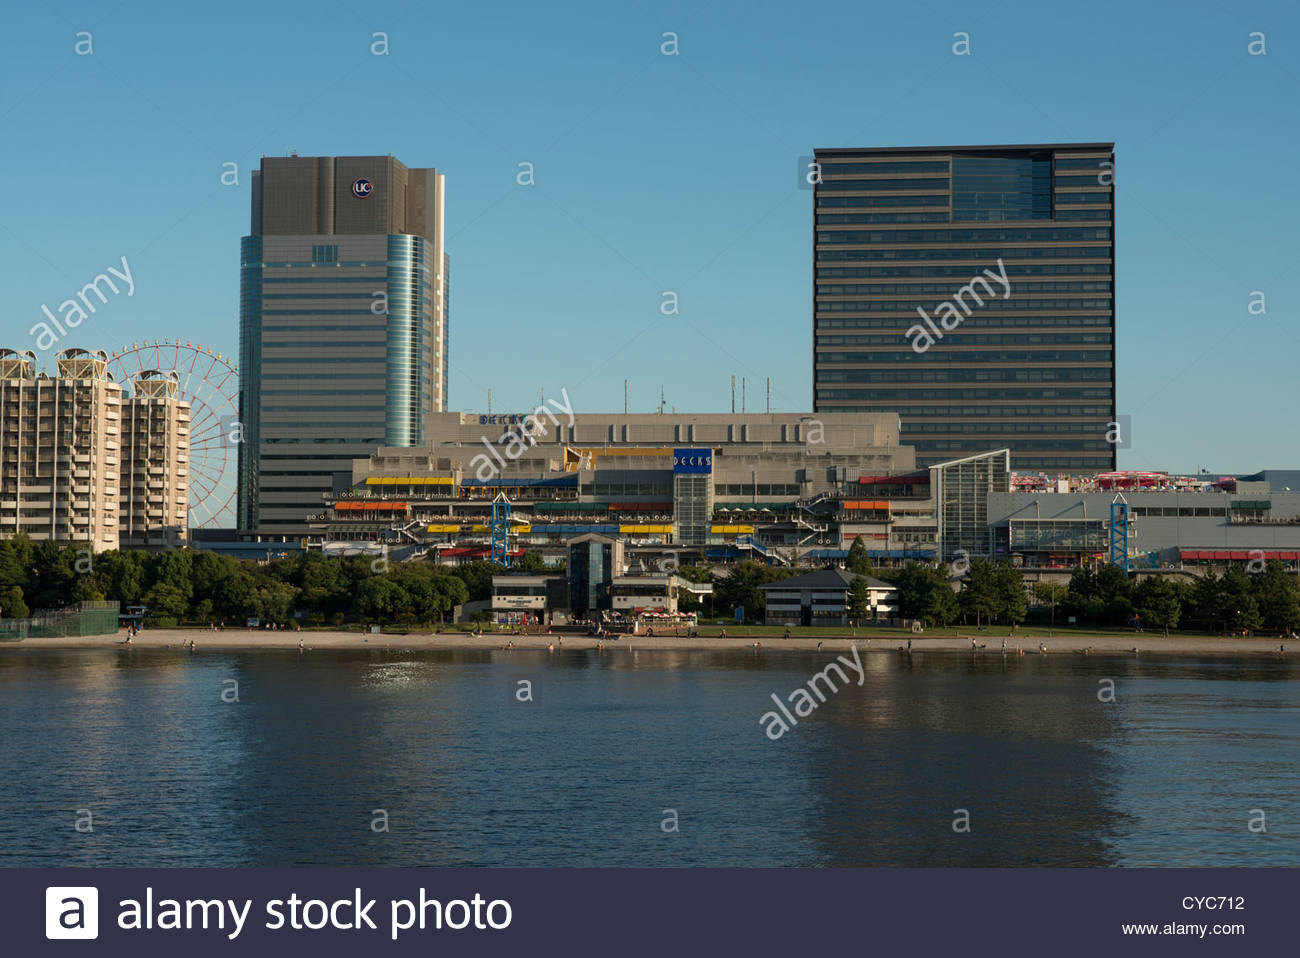 The Decks shopping and entertainment complex in Odaiba Tokyo Japan - Stock Image